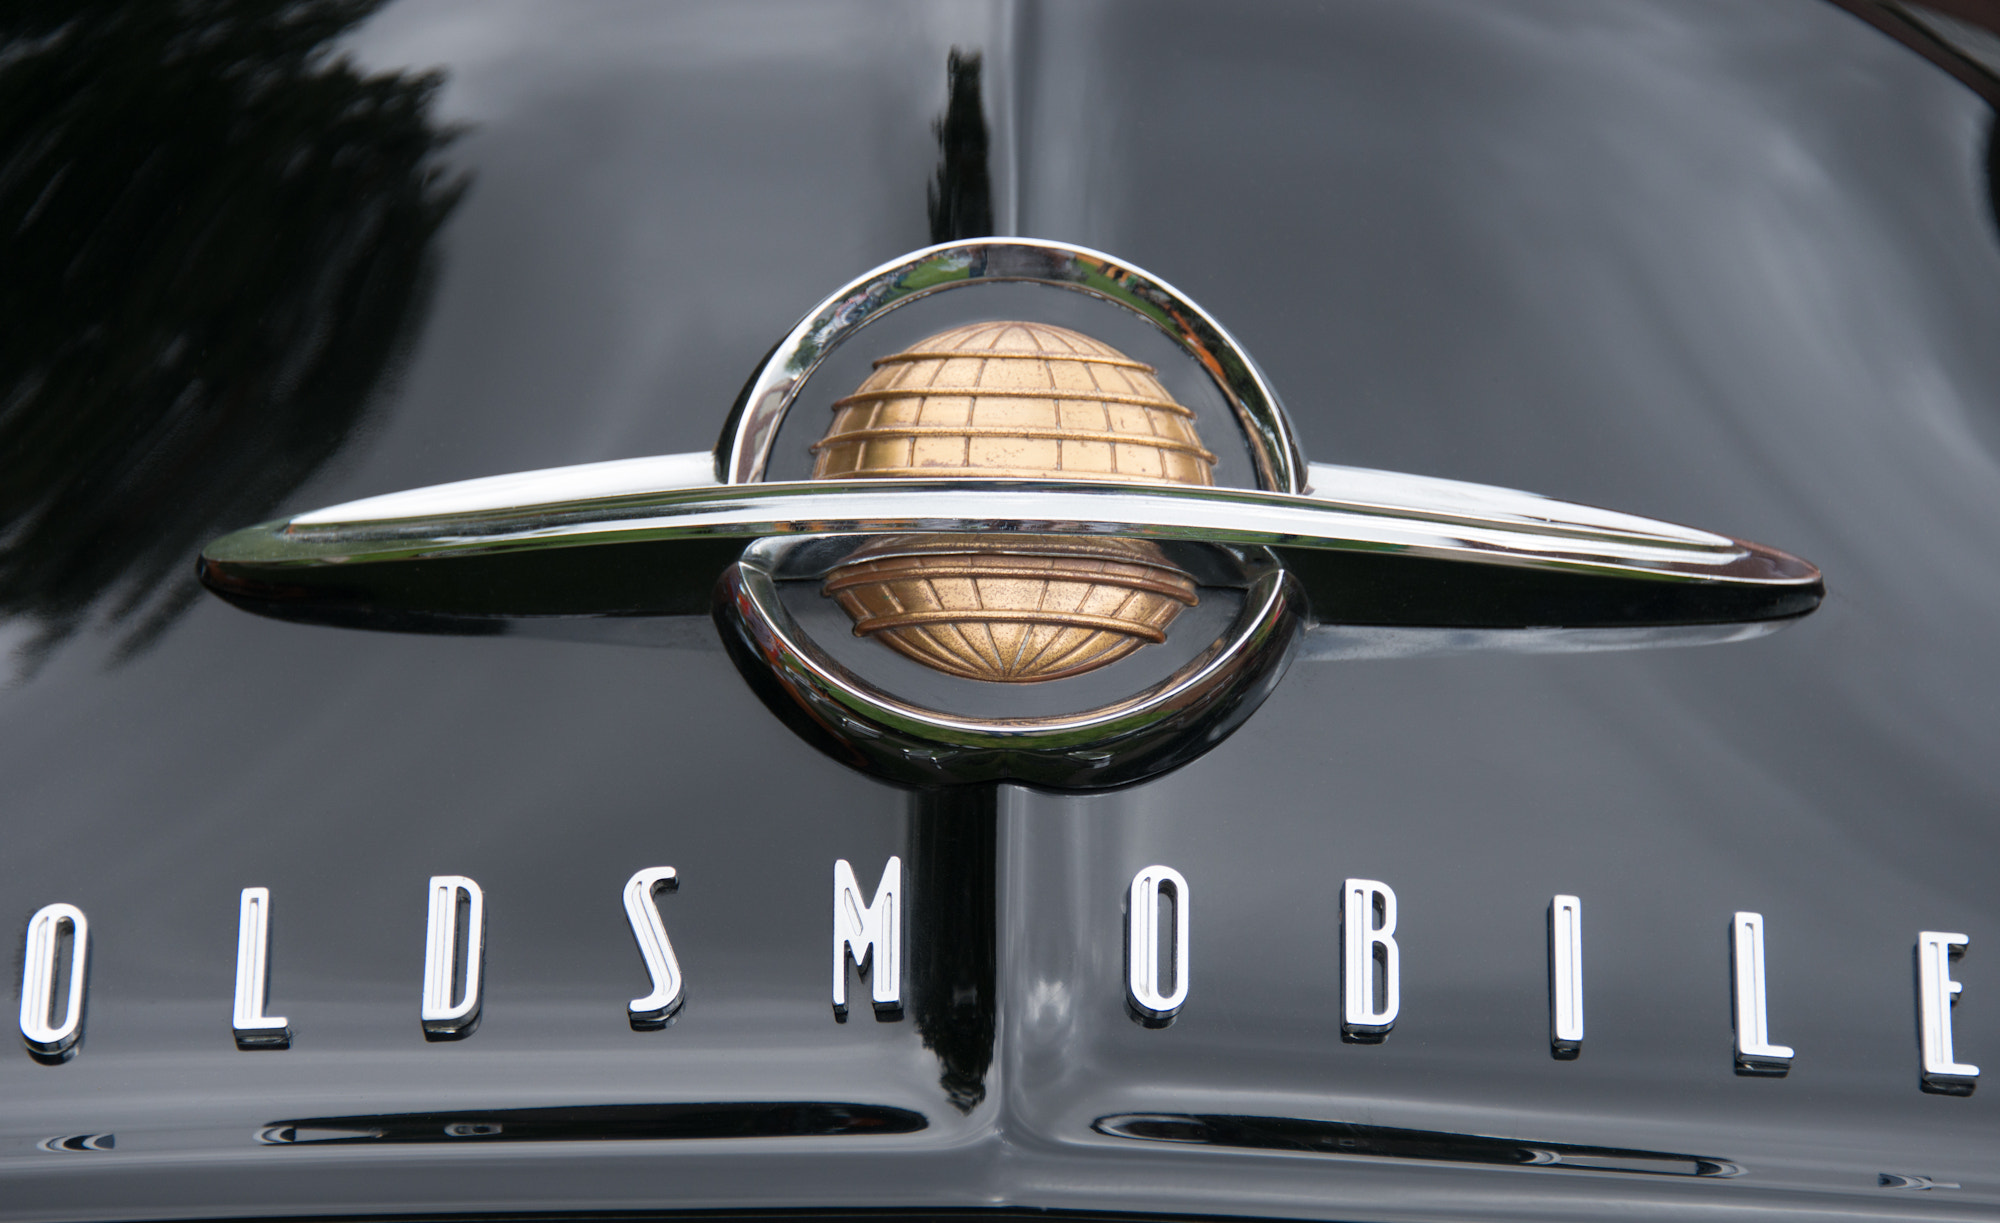 Photograph Oldsmobile by Michael Marks on 500px